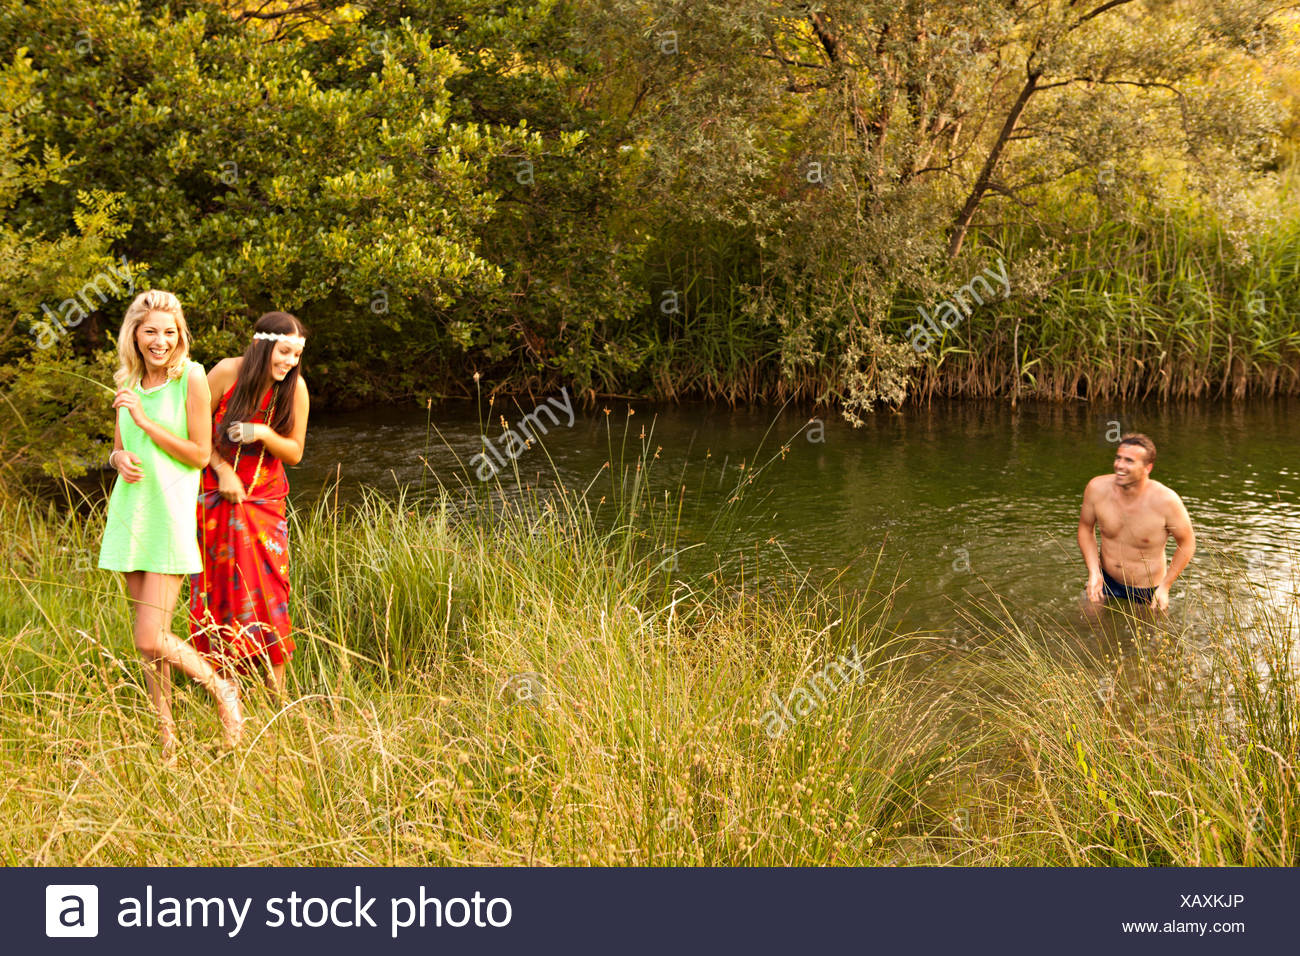 Croatia, Dalmatia, Man stands in lake, women on water's edge - Stock Image